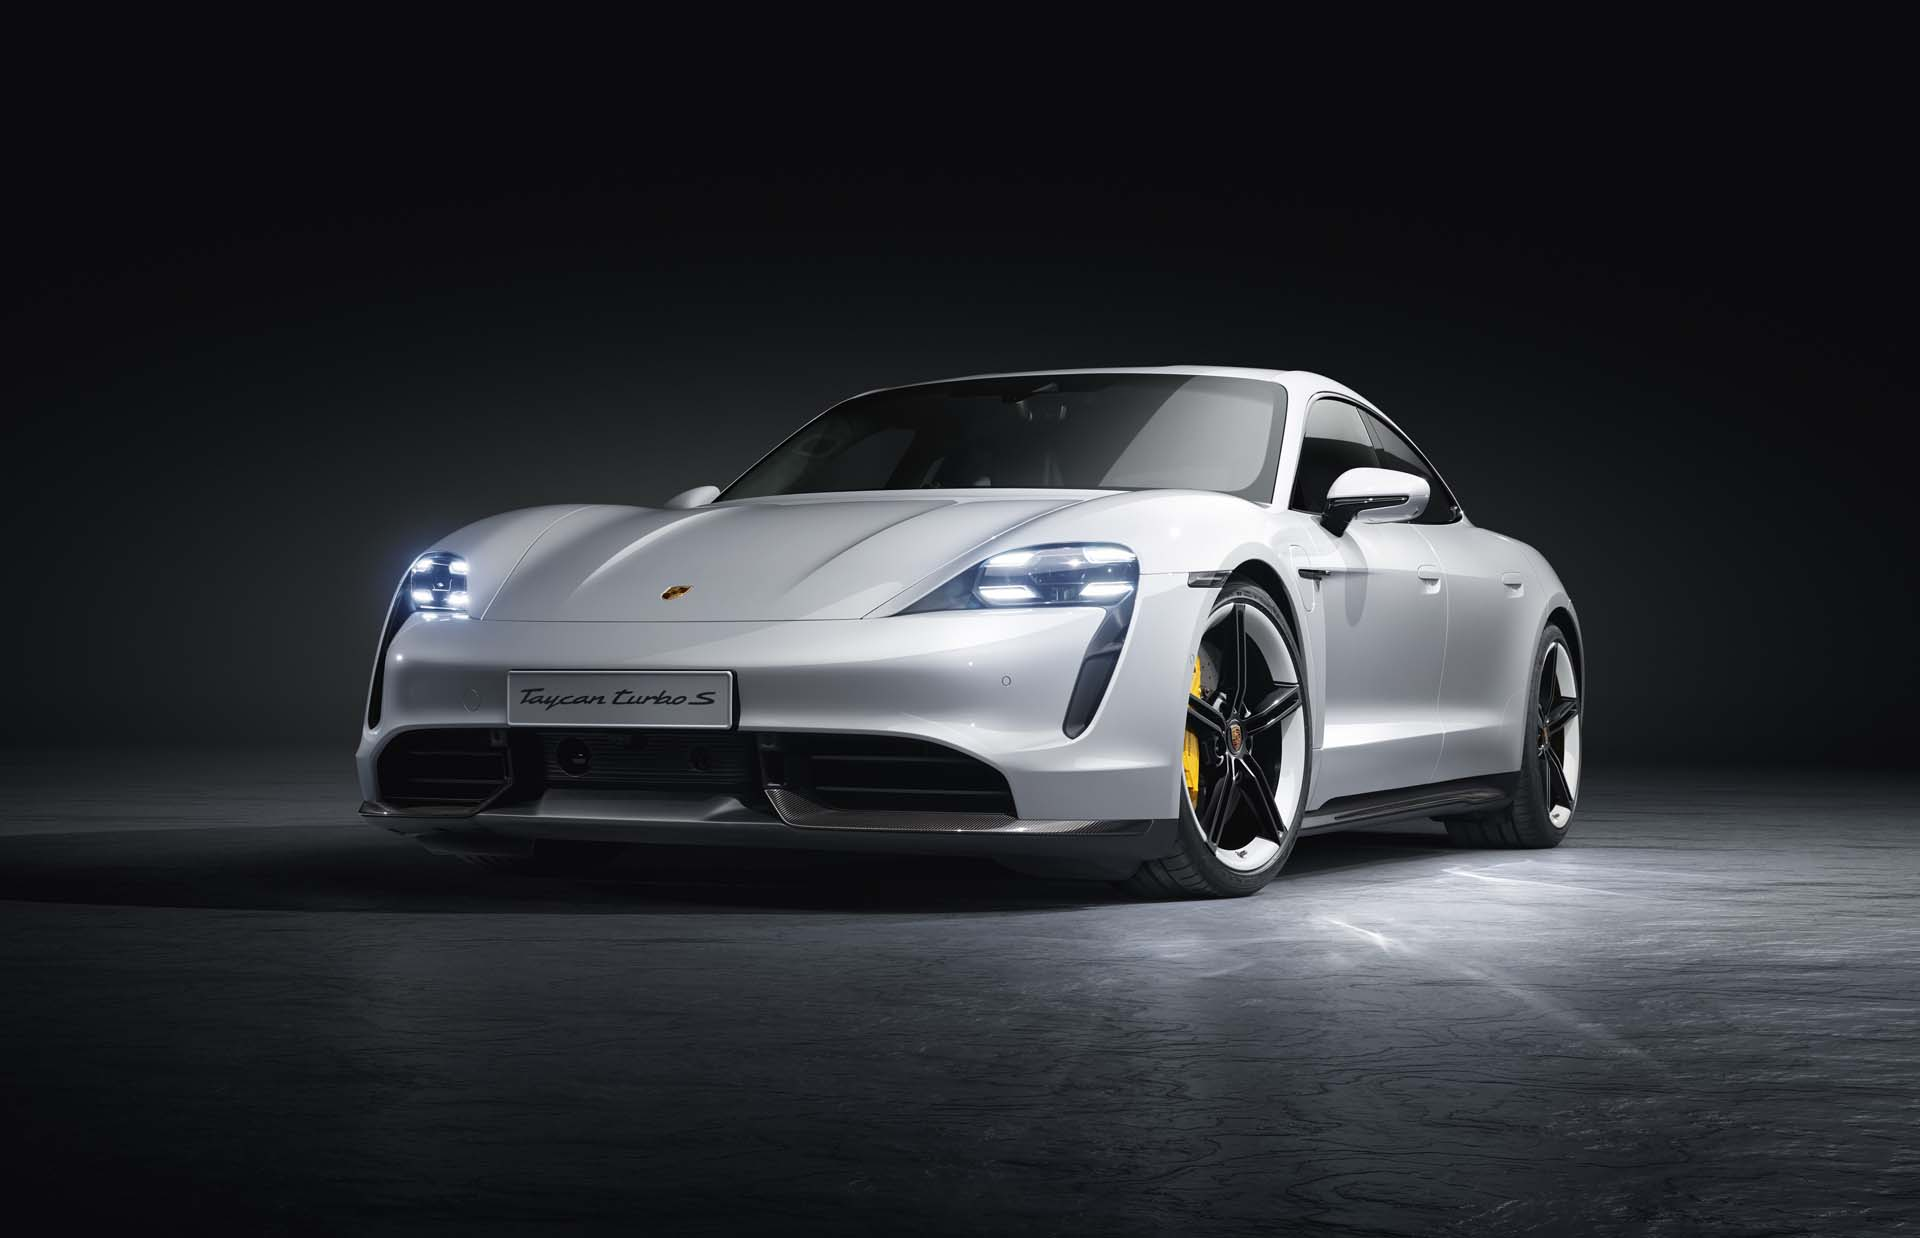 2020 Porsche Taycan preview: Fast, electric, expensive